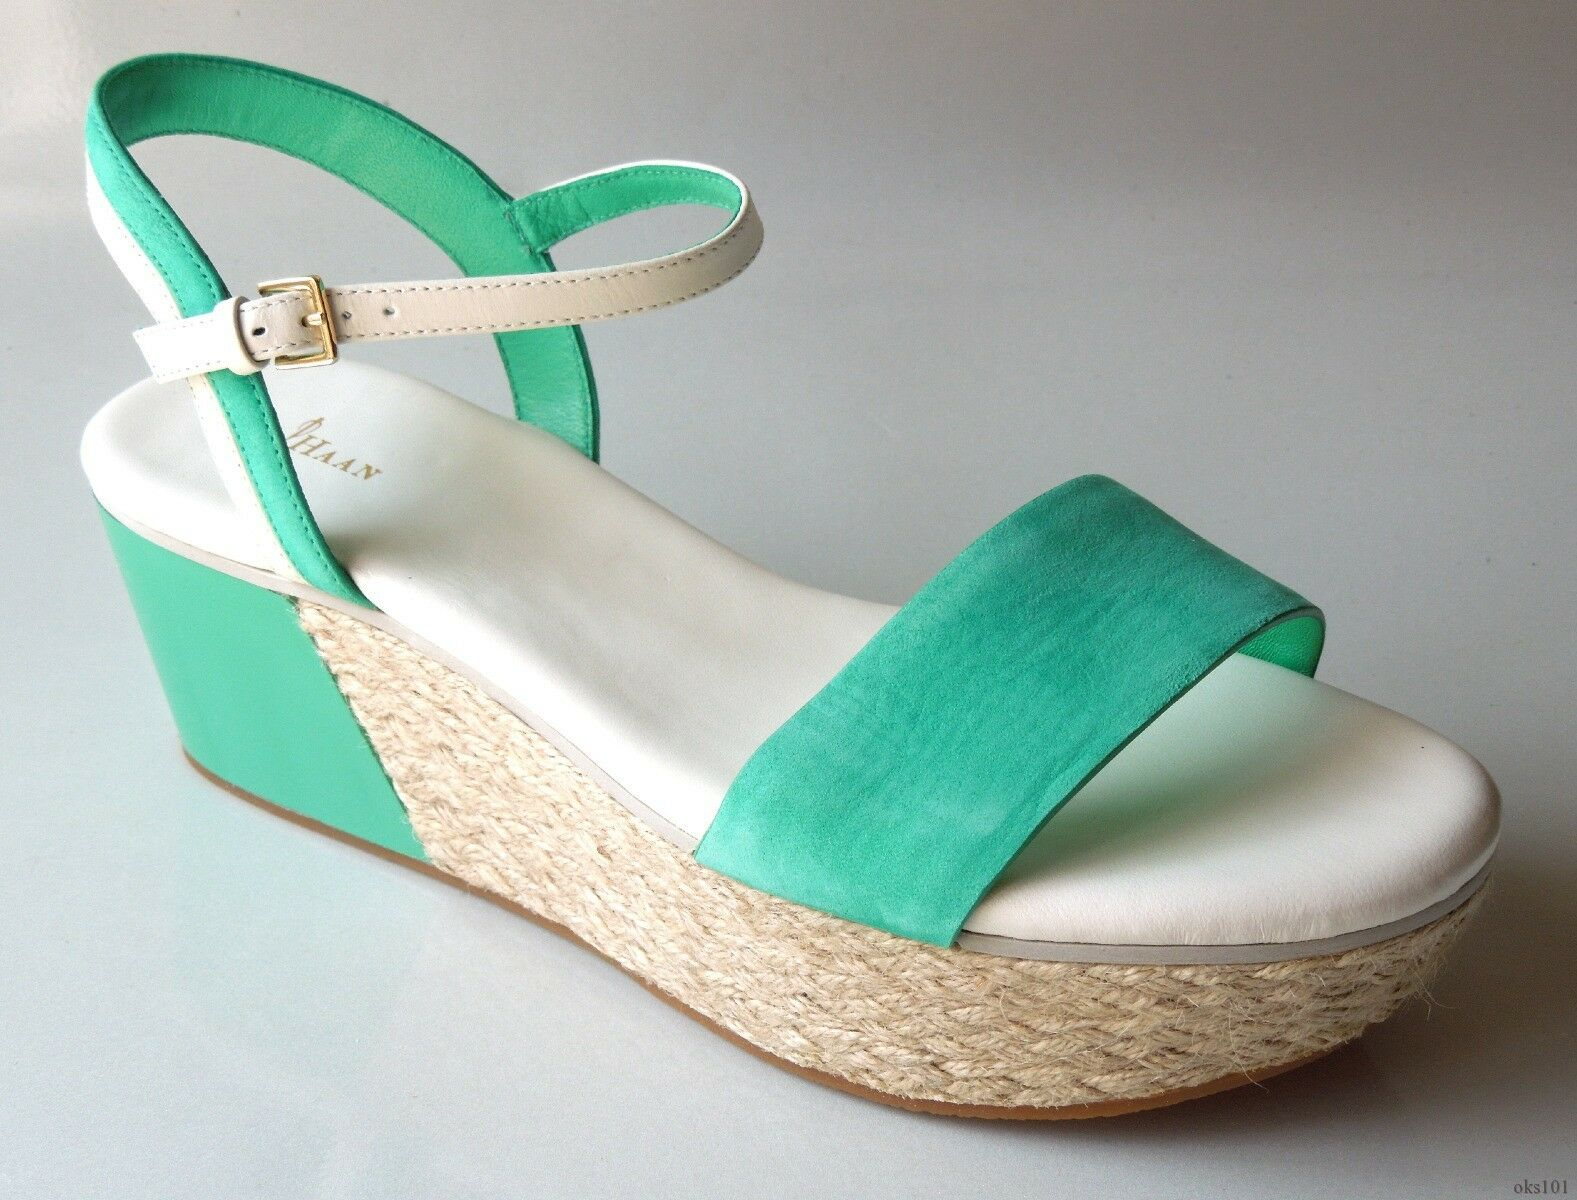 New COLE HAAN 'Arden' green white WEDGES shoes 9.5 - GREAT STYLE